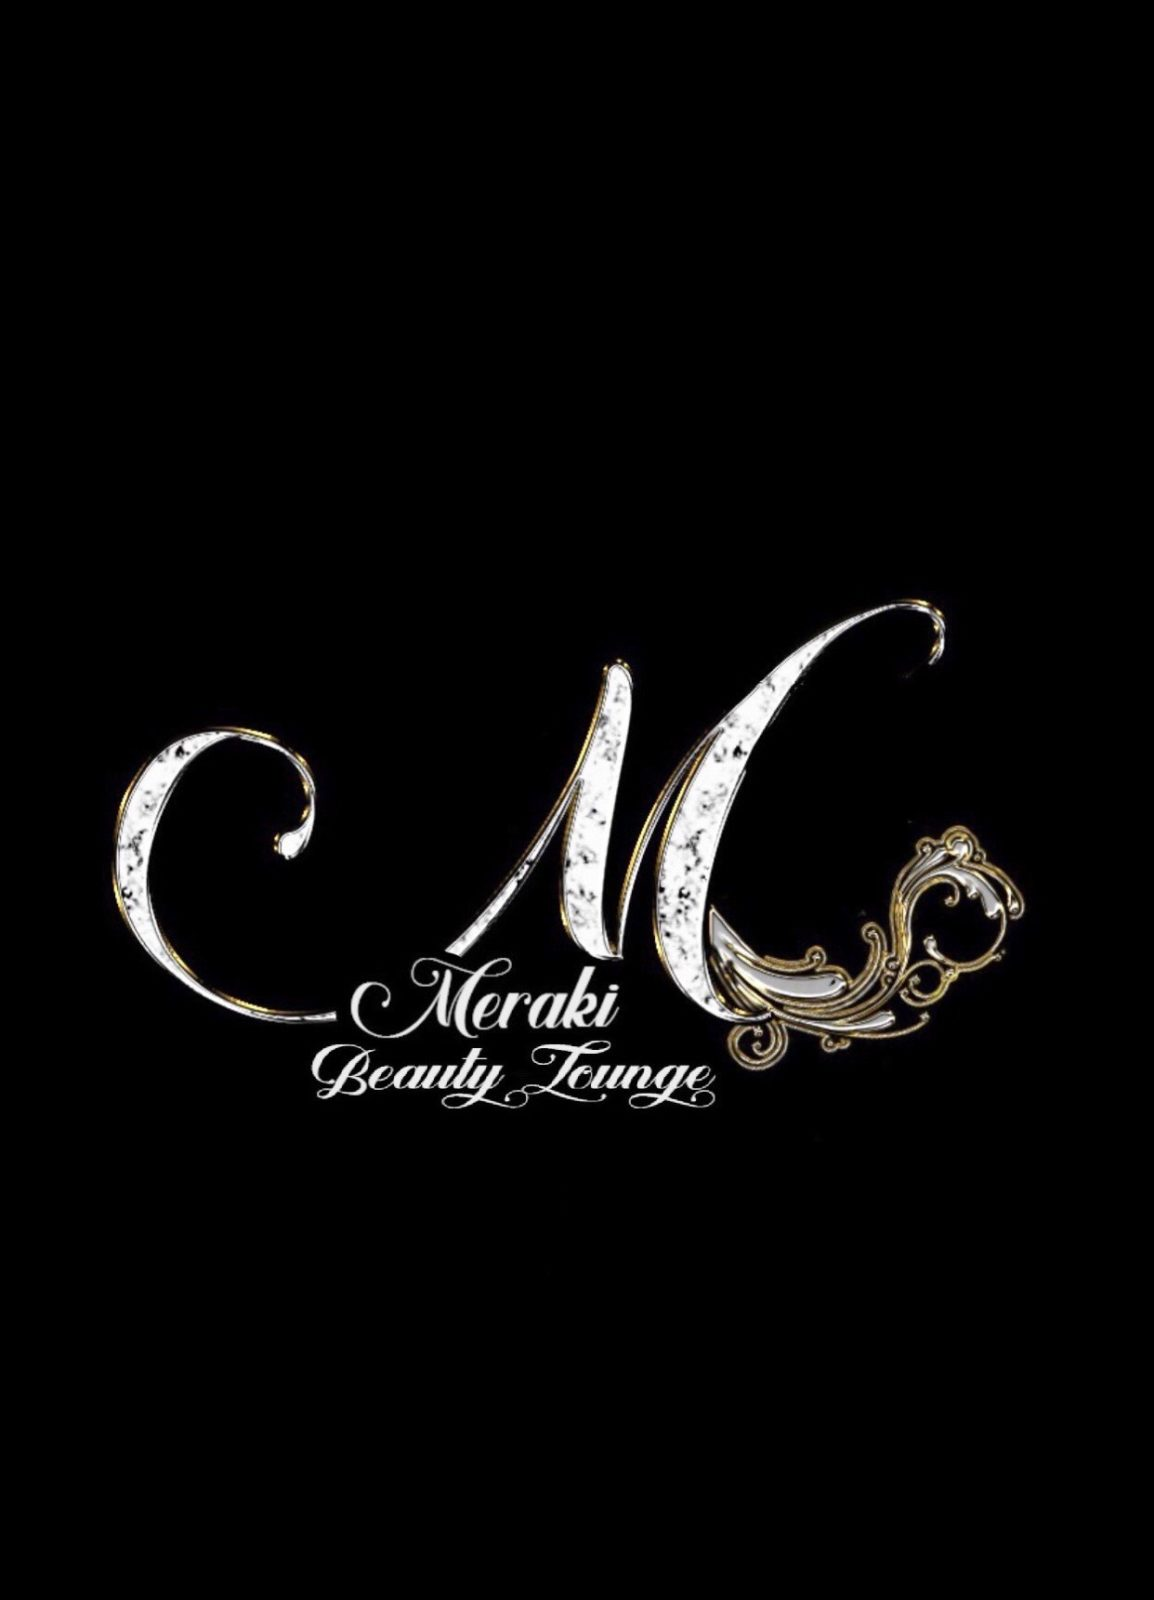 Meraki Beauty Lounge logo - Business in Manotick